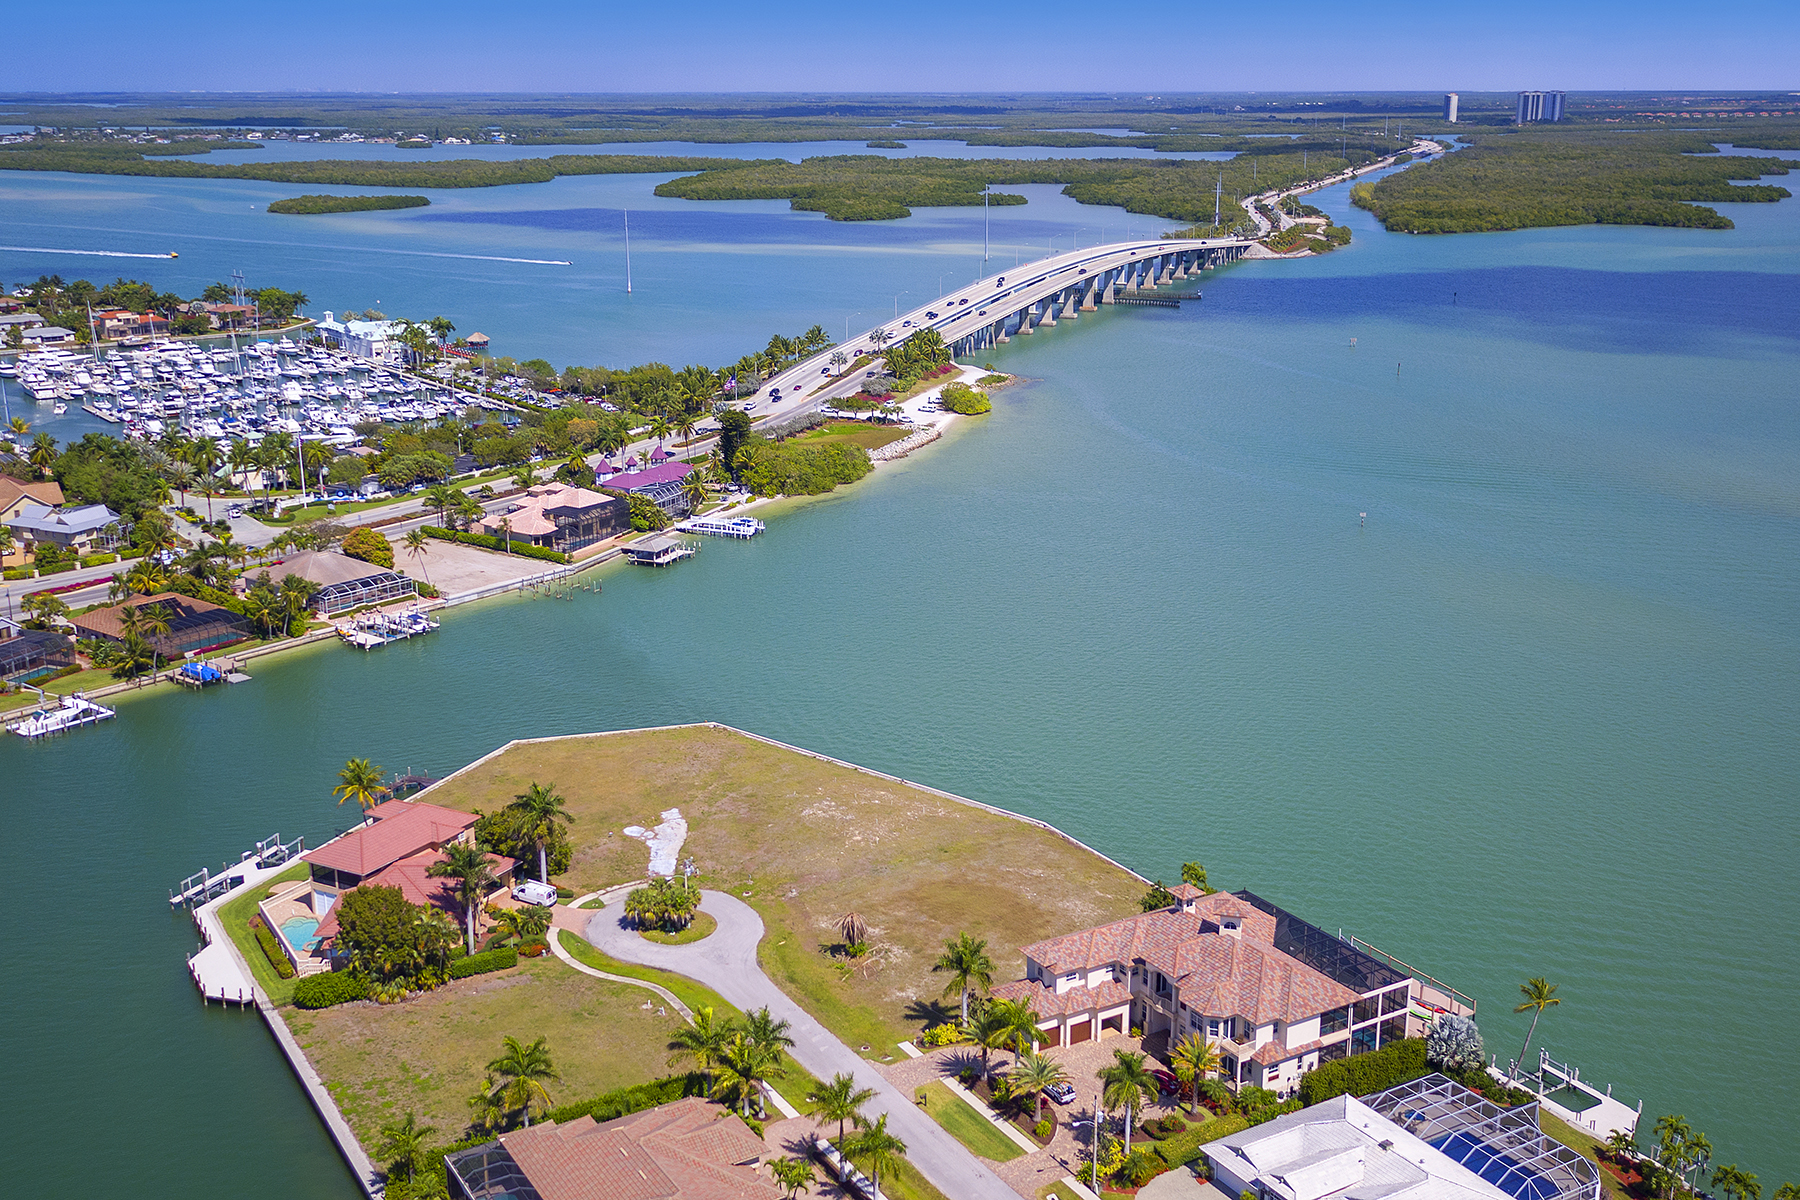 Land for Sale at MARCO ISLAND 1411 Butterfield Ct, Marco Island, Florida 34145 United States